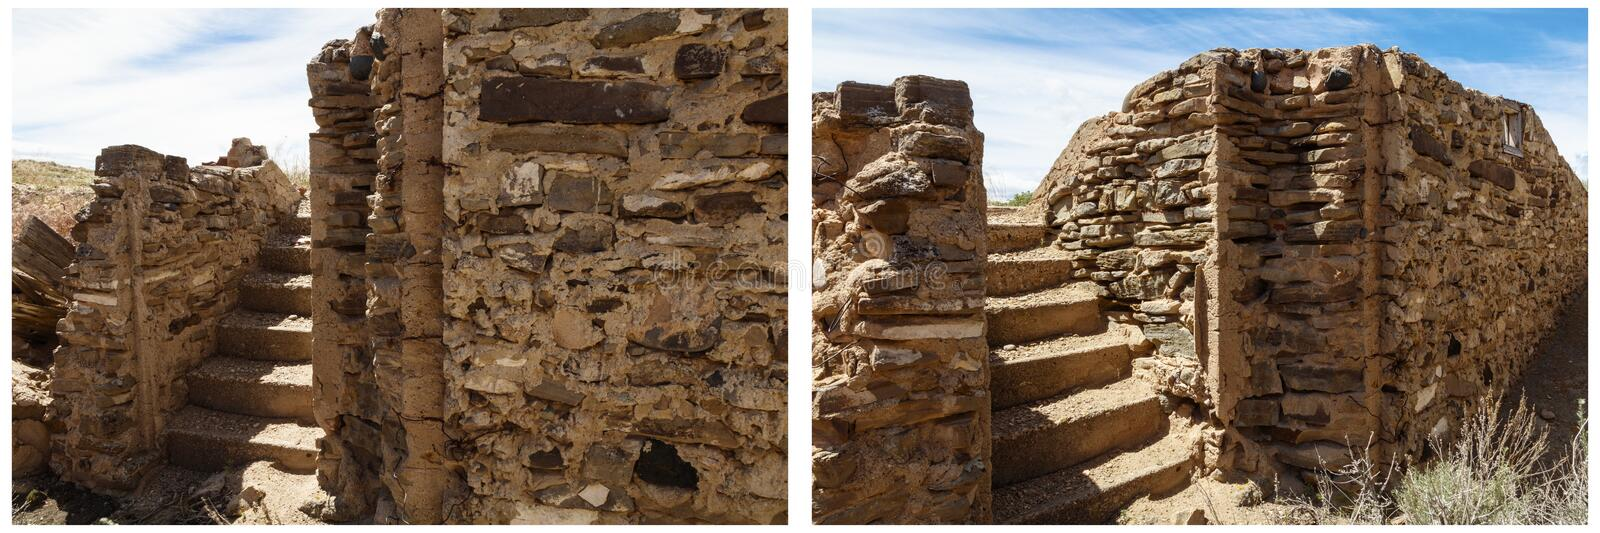 Ancient cellar stone steps wall collage. Aging cellar basement handmade stones sandstone rocks walls and stair step texture patterns historical building stock photos